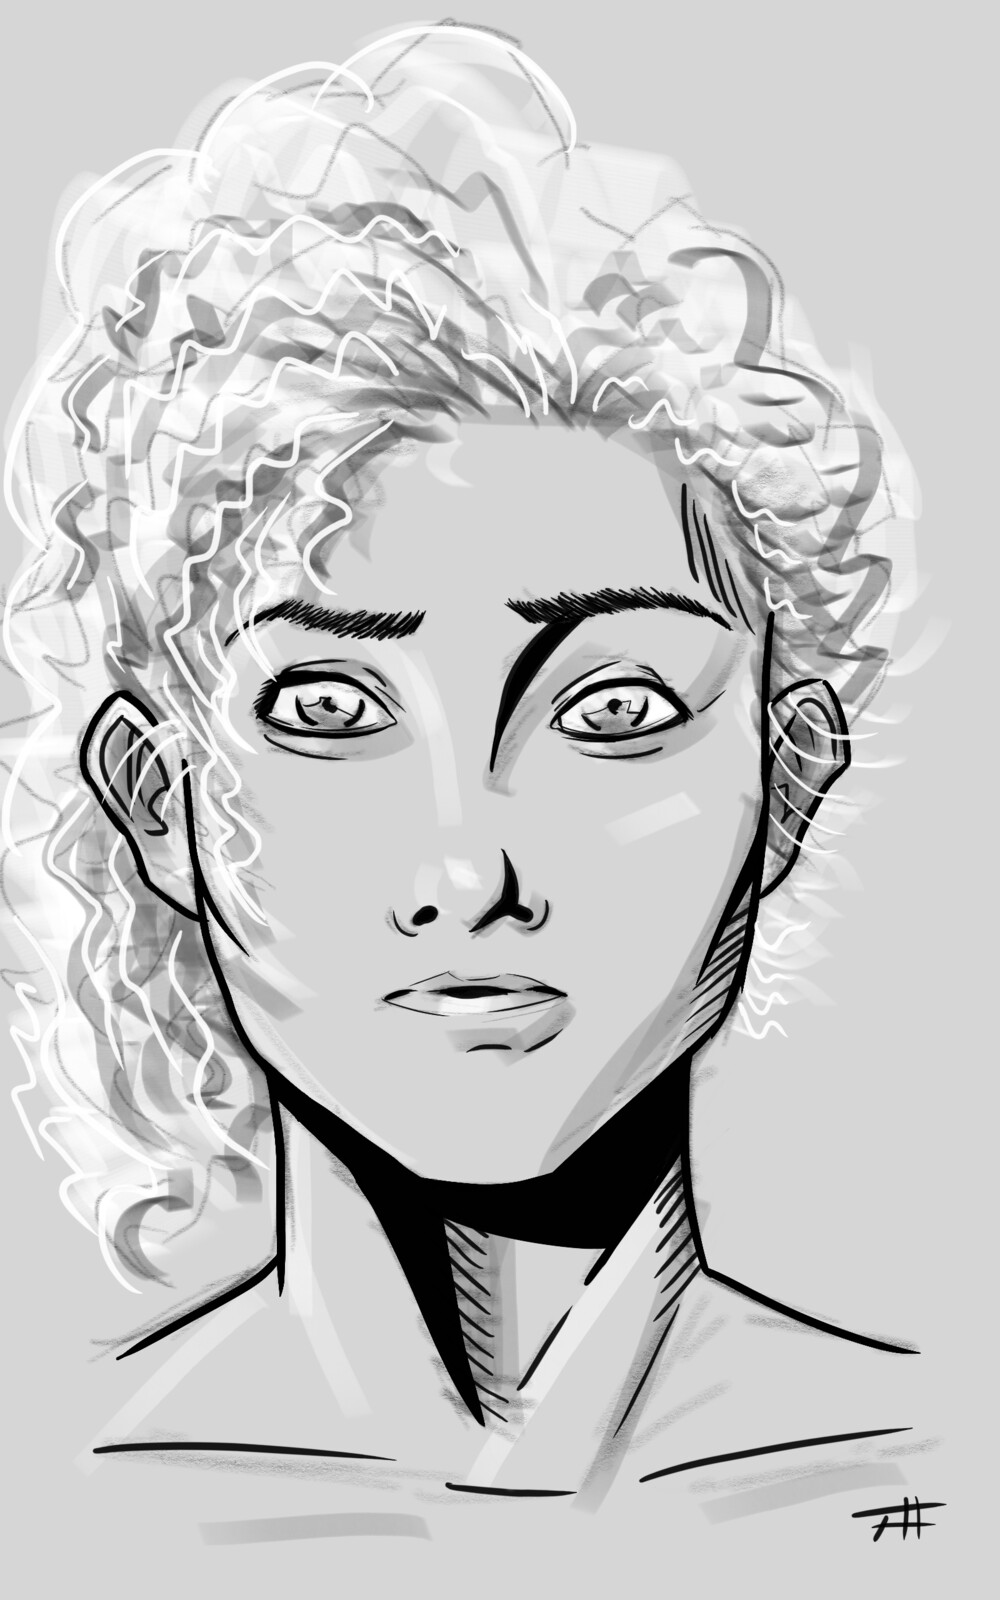 Another unnamed character from an upcoming project. Digital